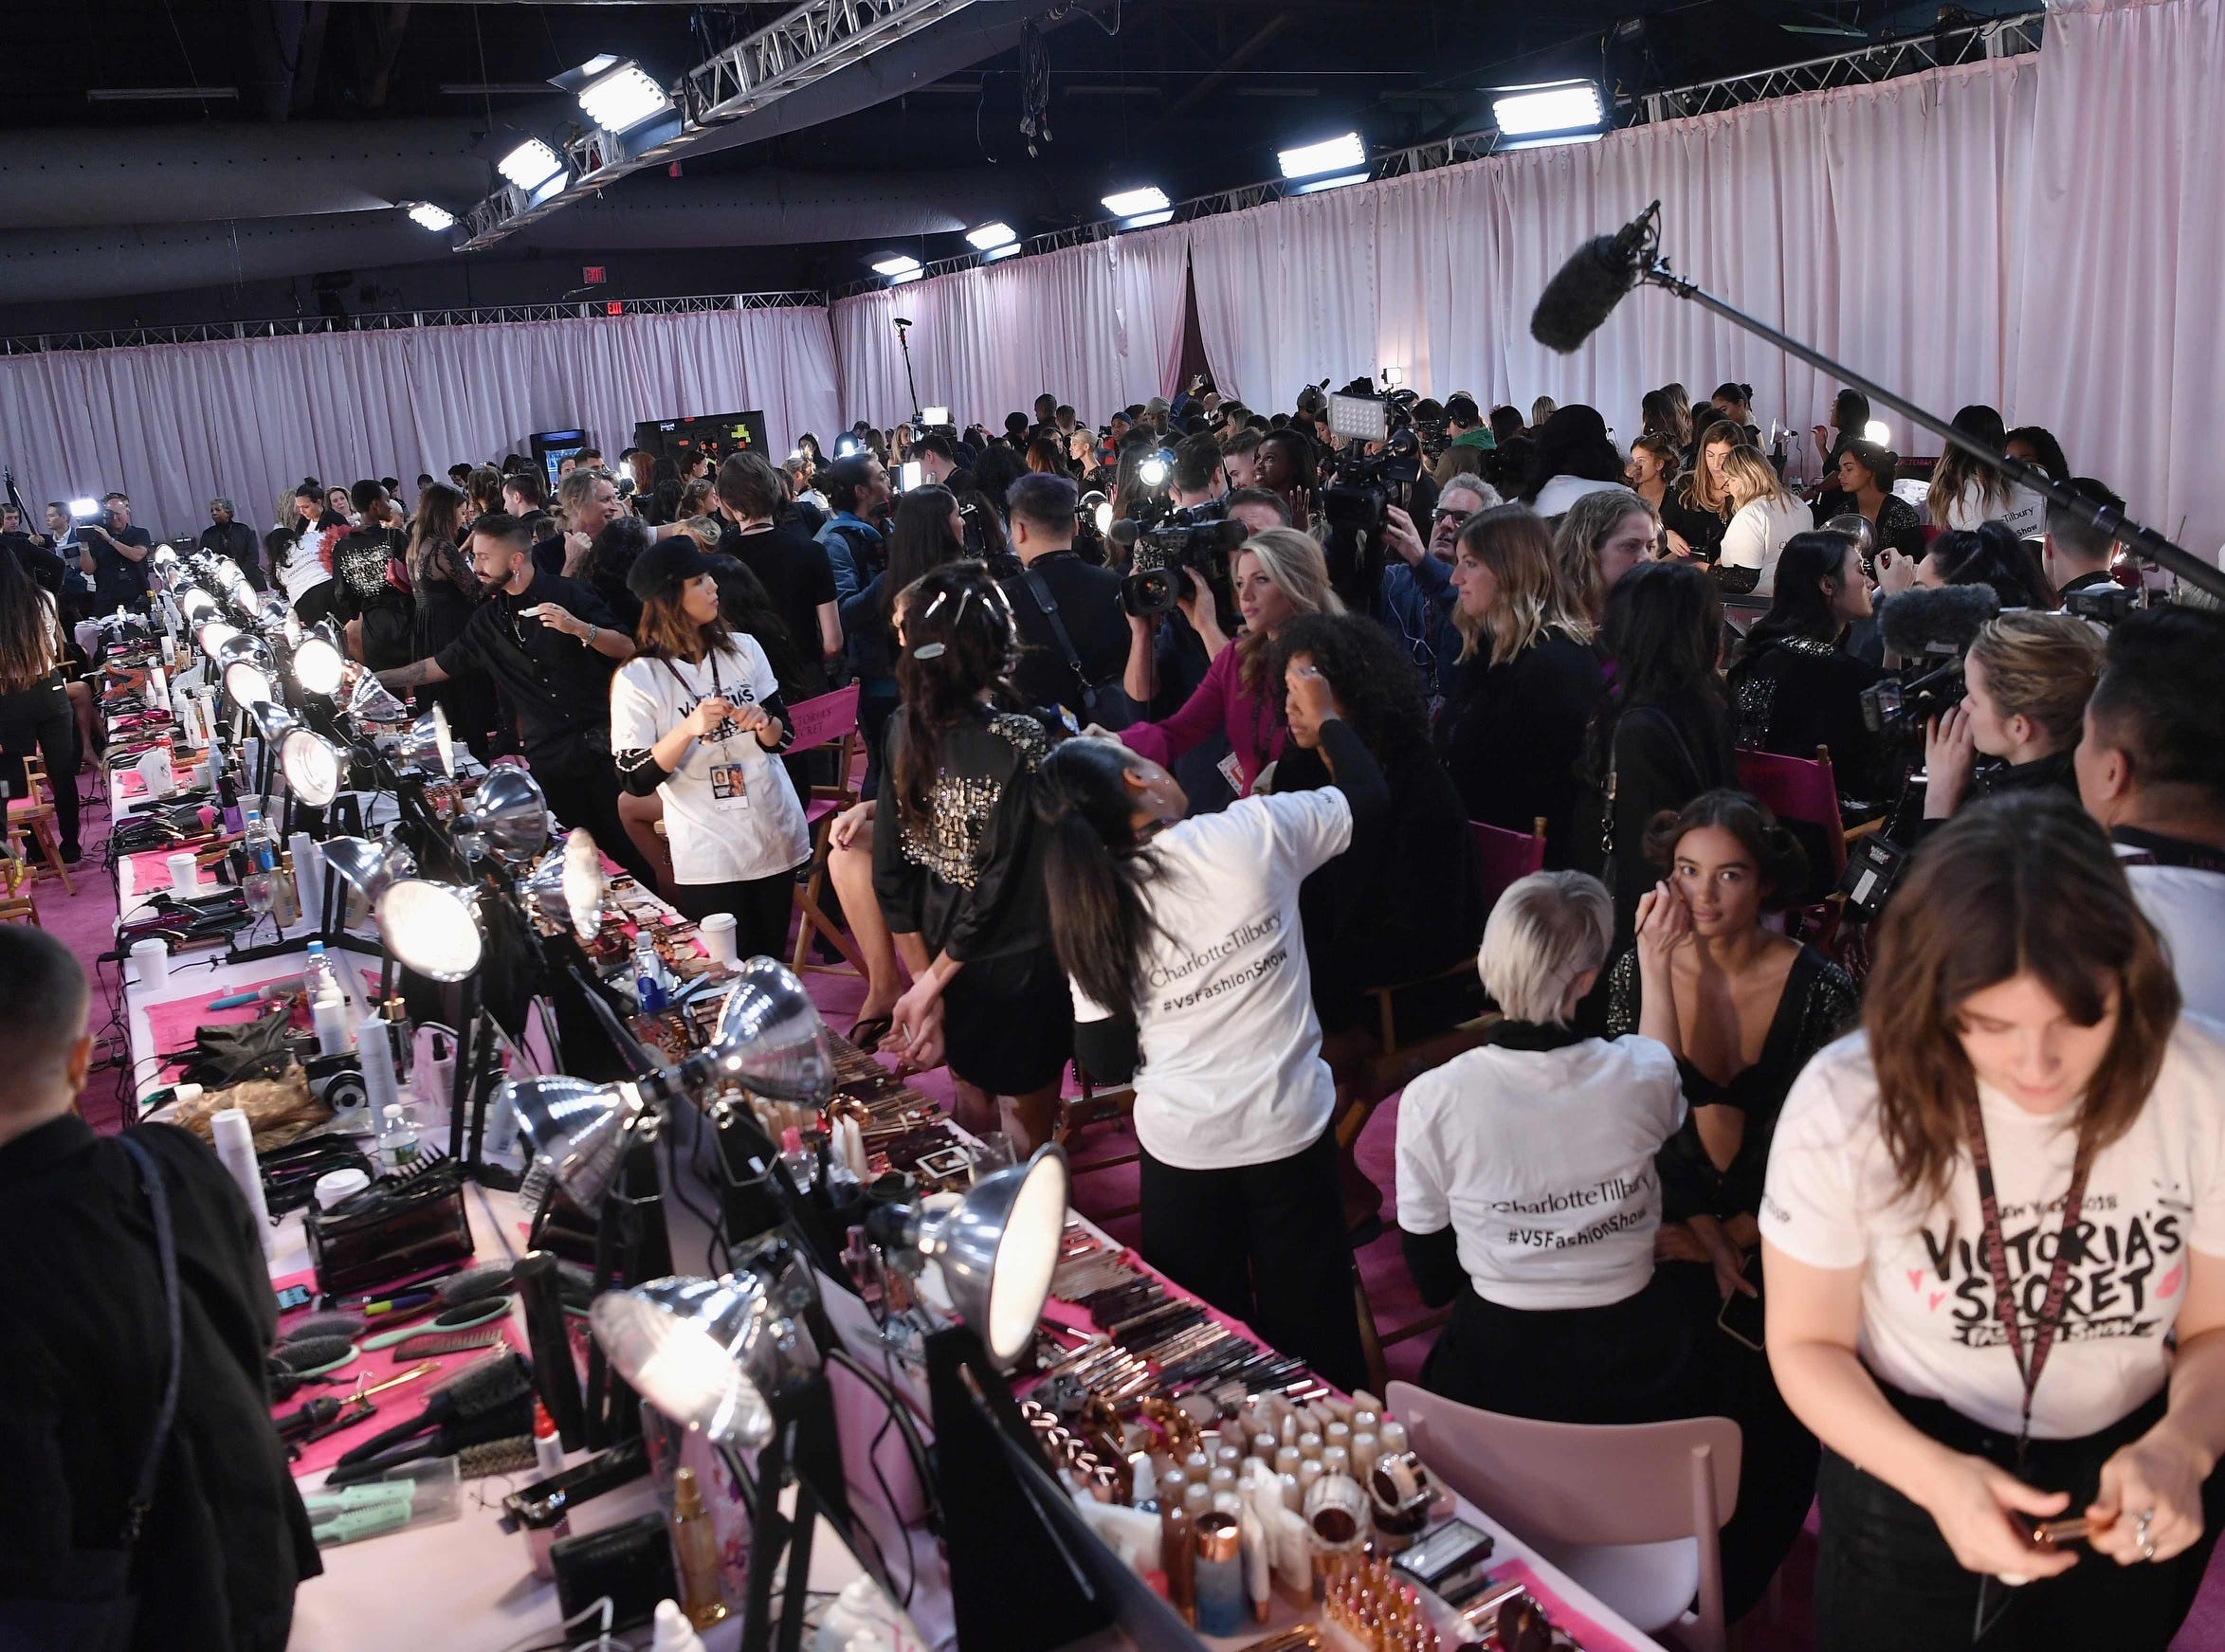 Here's an overview of the 2018 Victoria's Secret Fashion Show hair and make-up hustle and bustle backstage. Every year, the Victoria's Secret show brings its famous models together for what is consistently a glittery catwalk extravaganza. It's the most-watched fashion event of the year (800 million tune in annually) with around $12 million USD spent on putting the spectacle together according to Harper's Bazaar.